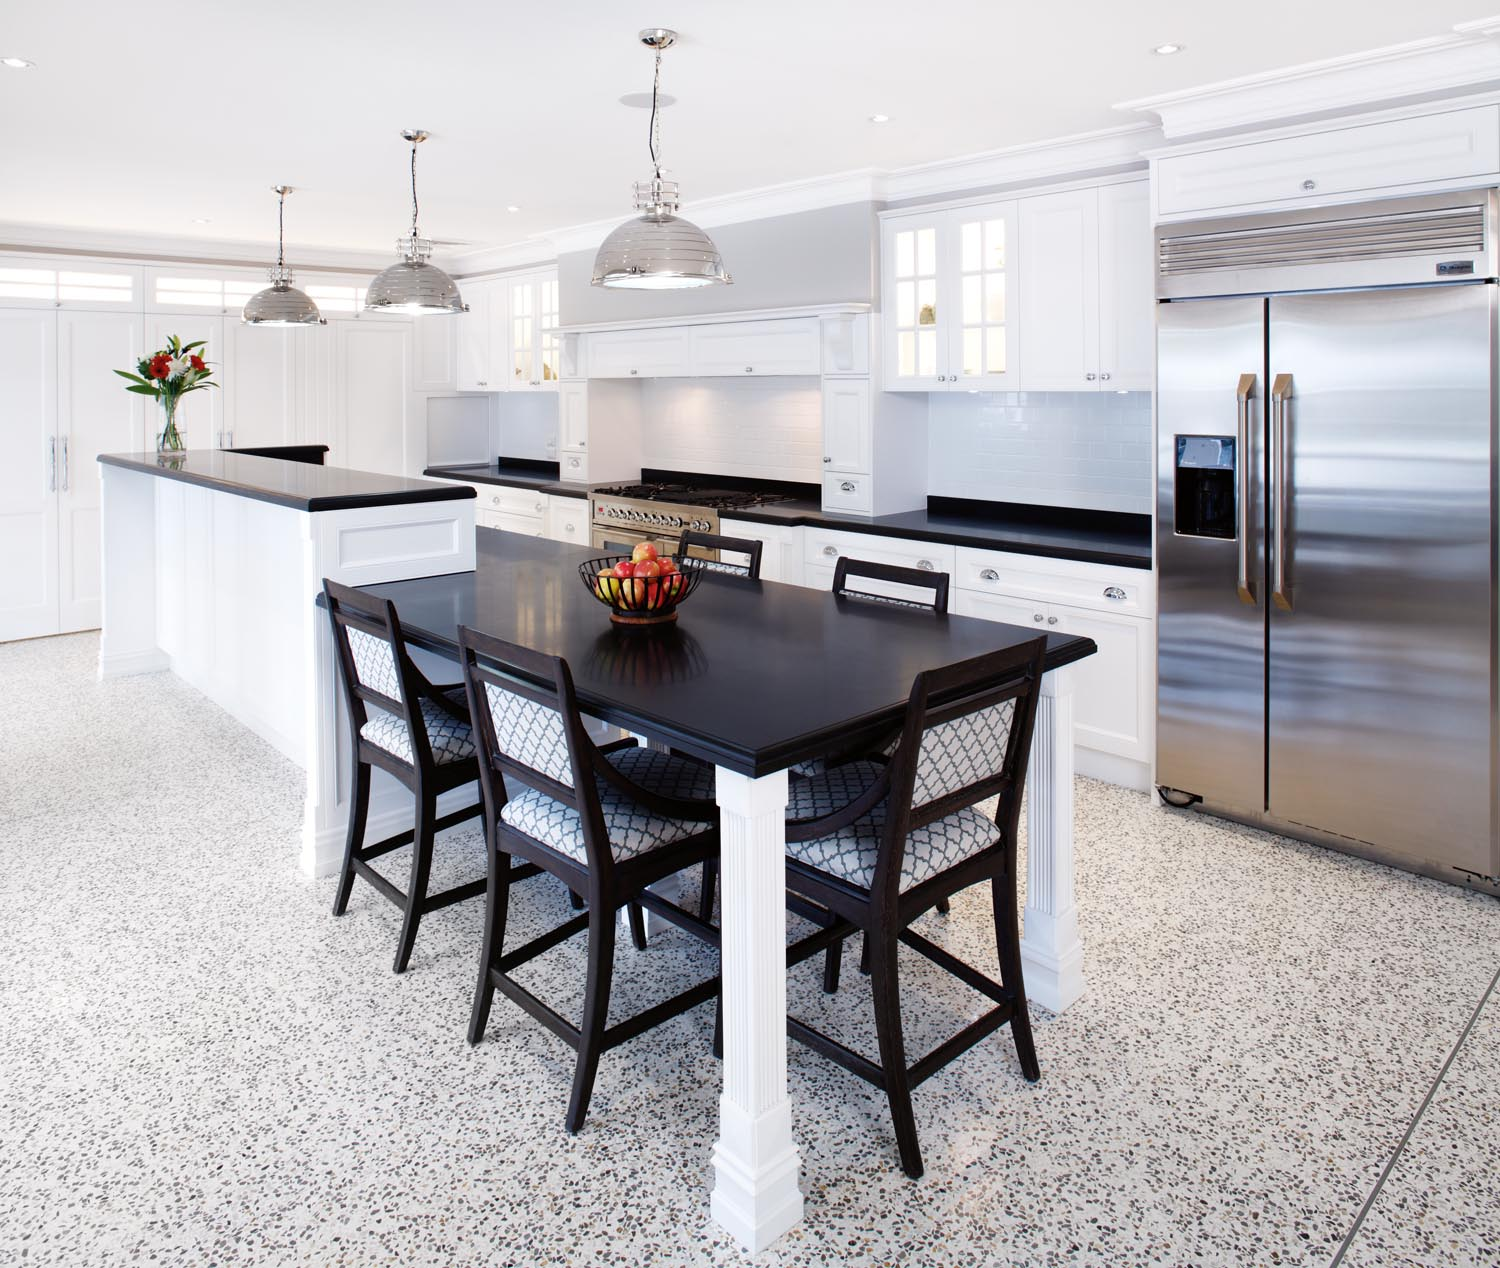 Elegant Hamptons Style Kitchen Design Elegant Hamptons Style Kitchen Design  ...